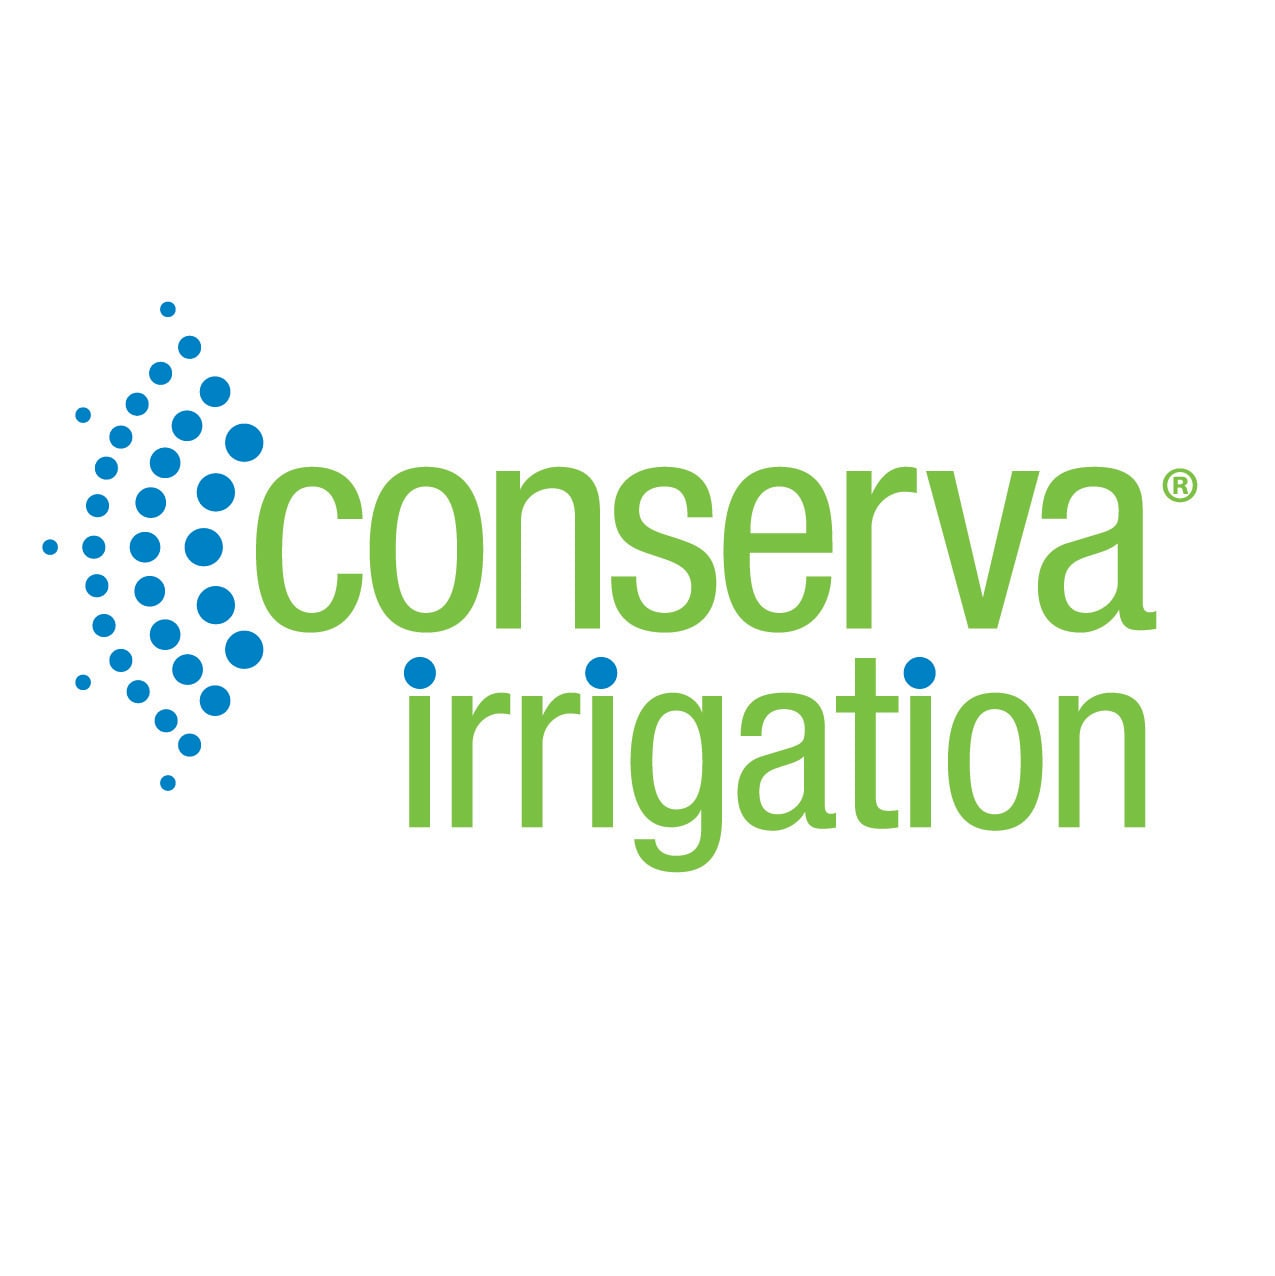 Conserva Irrigation of Fort Collins